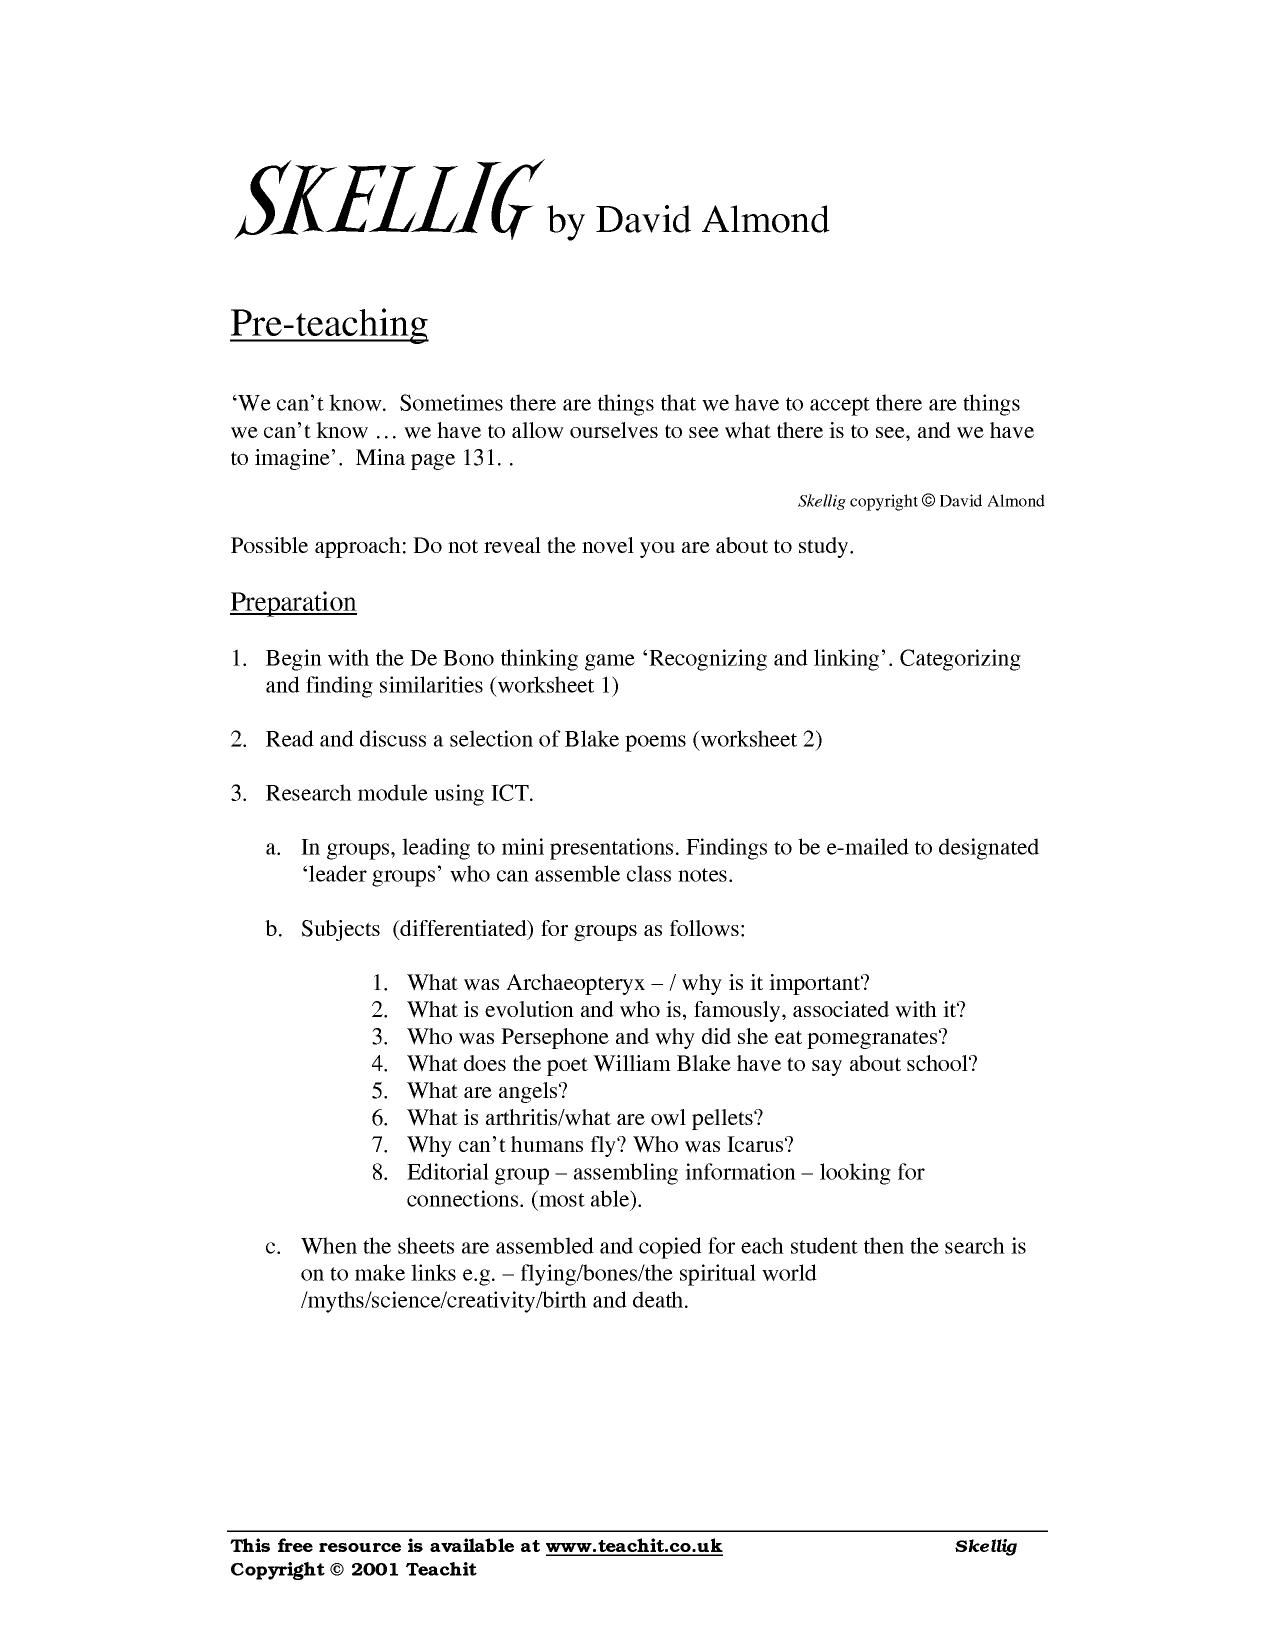 Worksheets The Pigman Worksheets ks3 skellig by david almond teachit english 5 preview